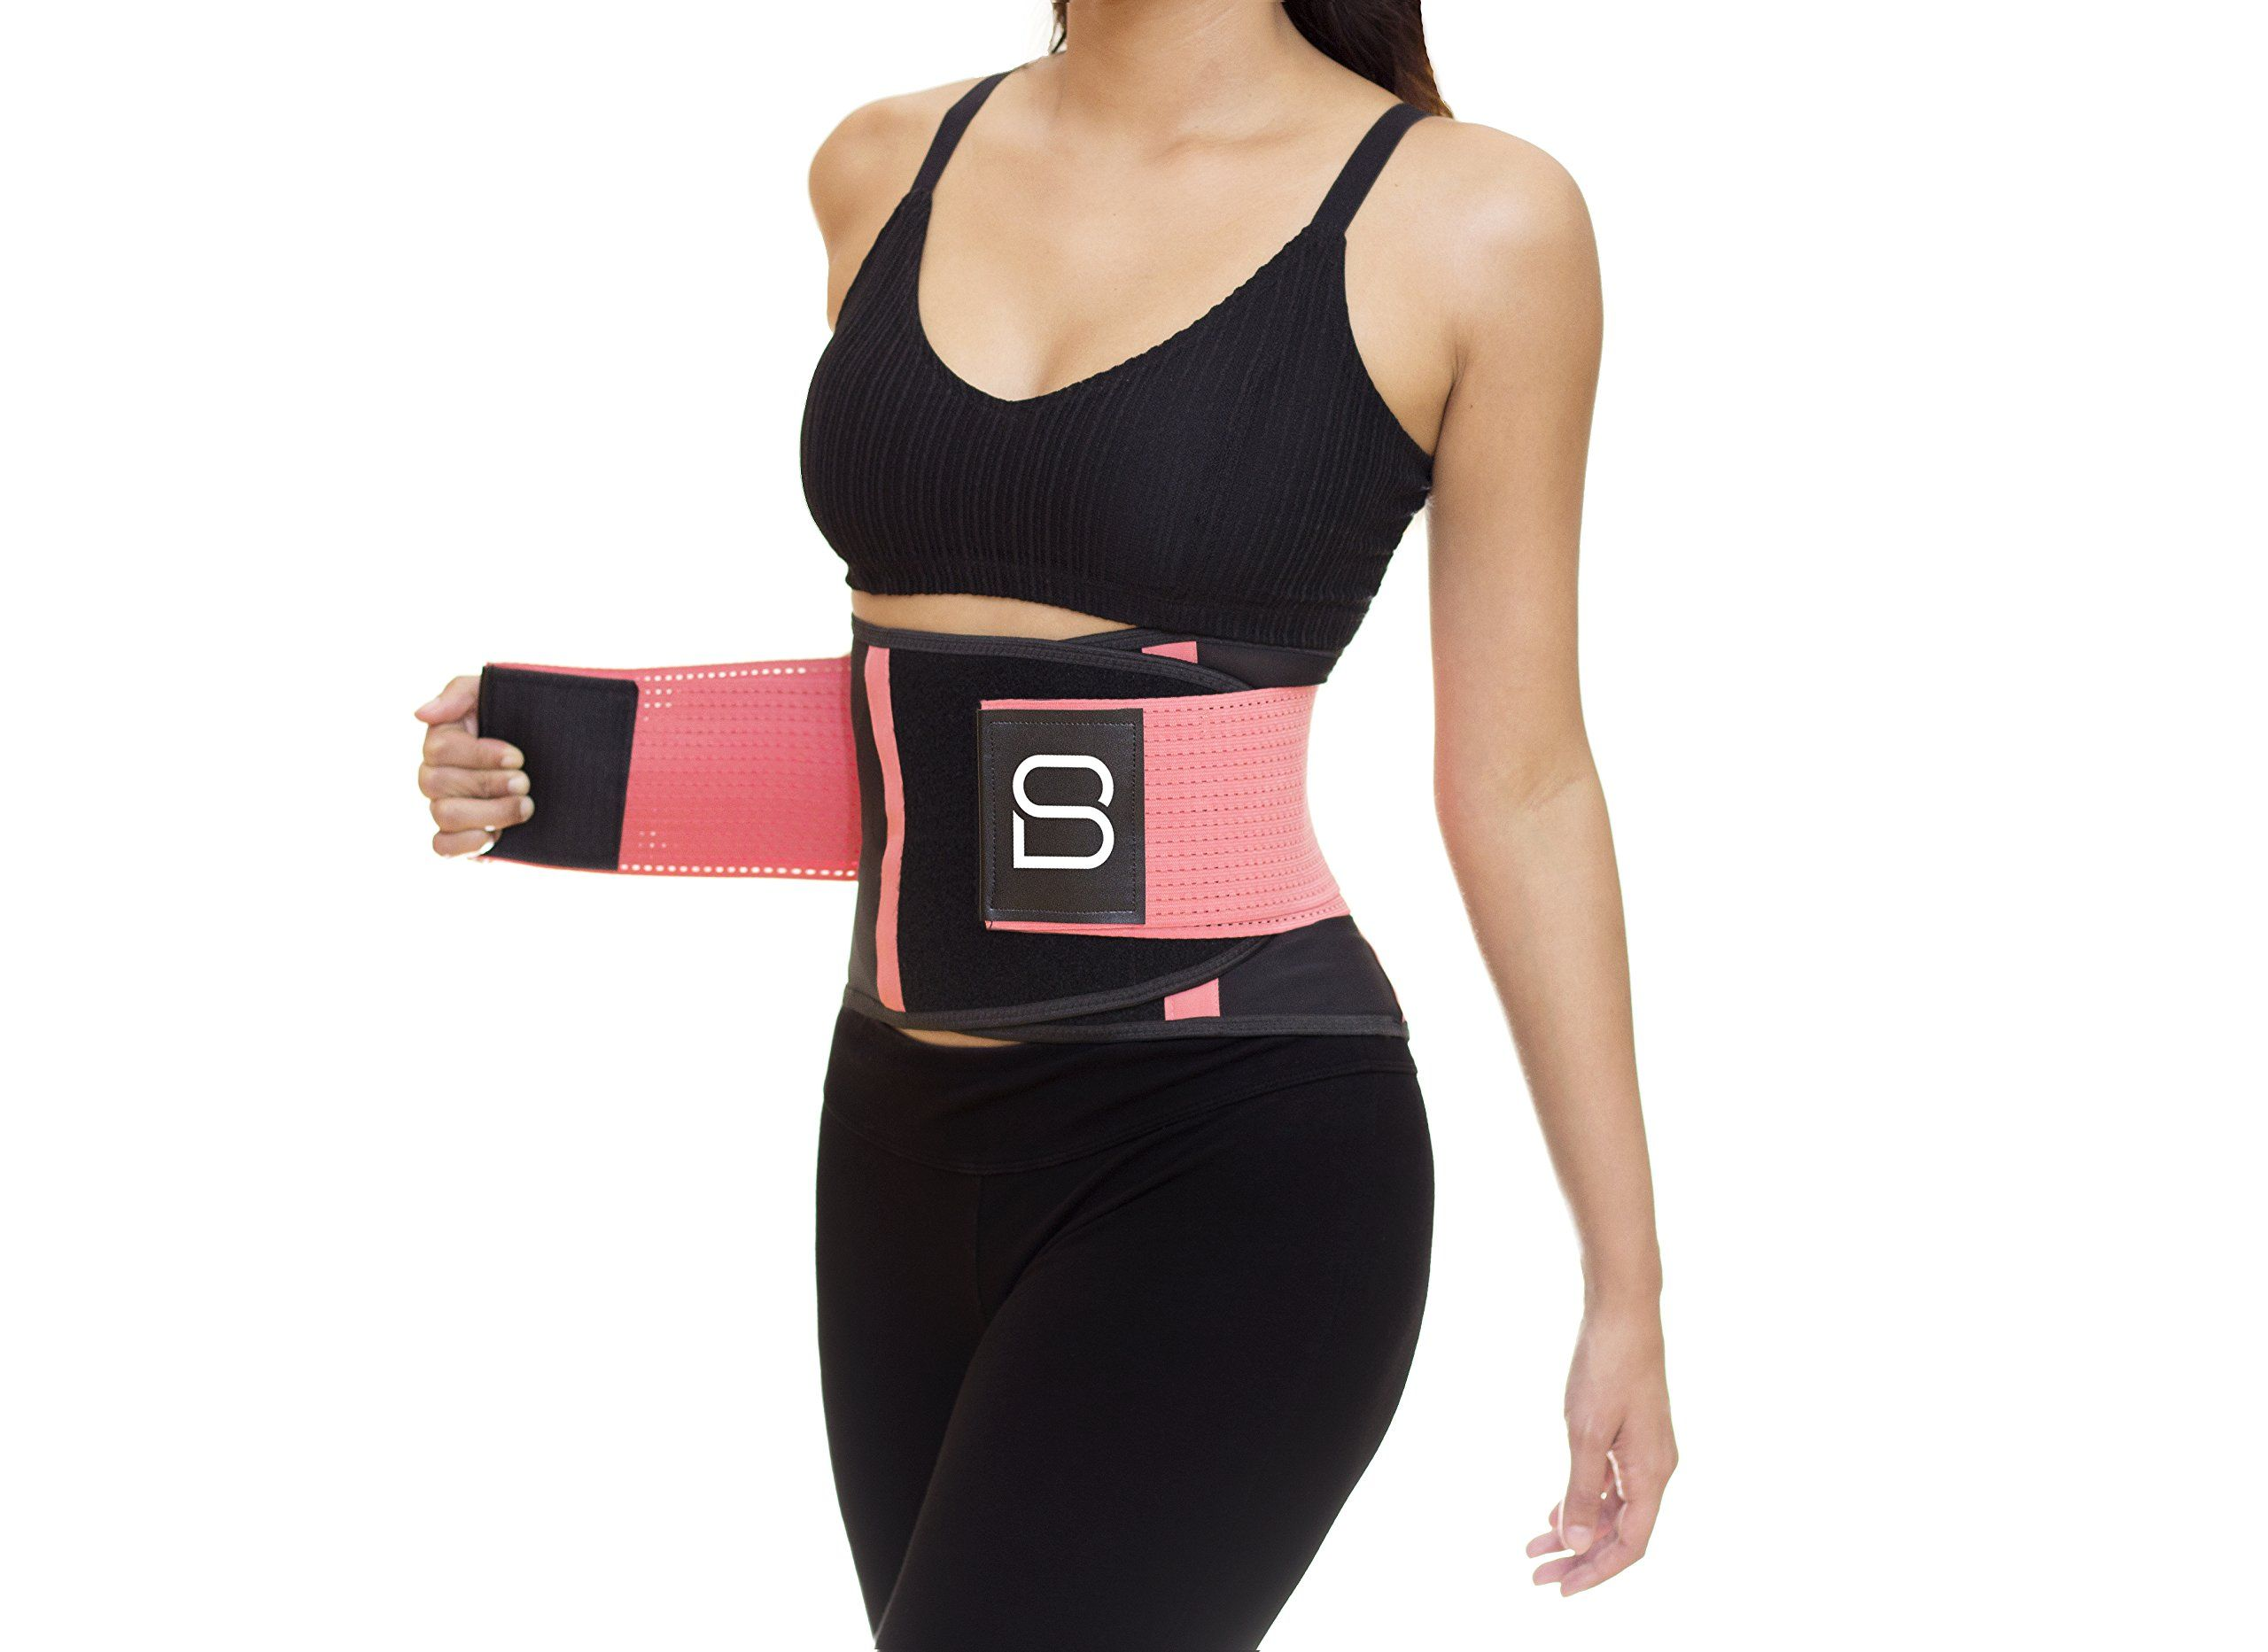 MOOORE Waist Trainer for Women and Man Corset Waist Cincher Trimmer Sweat Slimming Belly Band Tummy Control Shapewear Sports Girdle